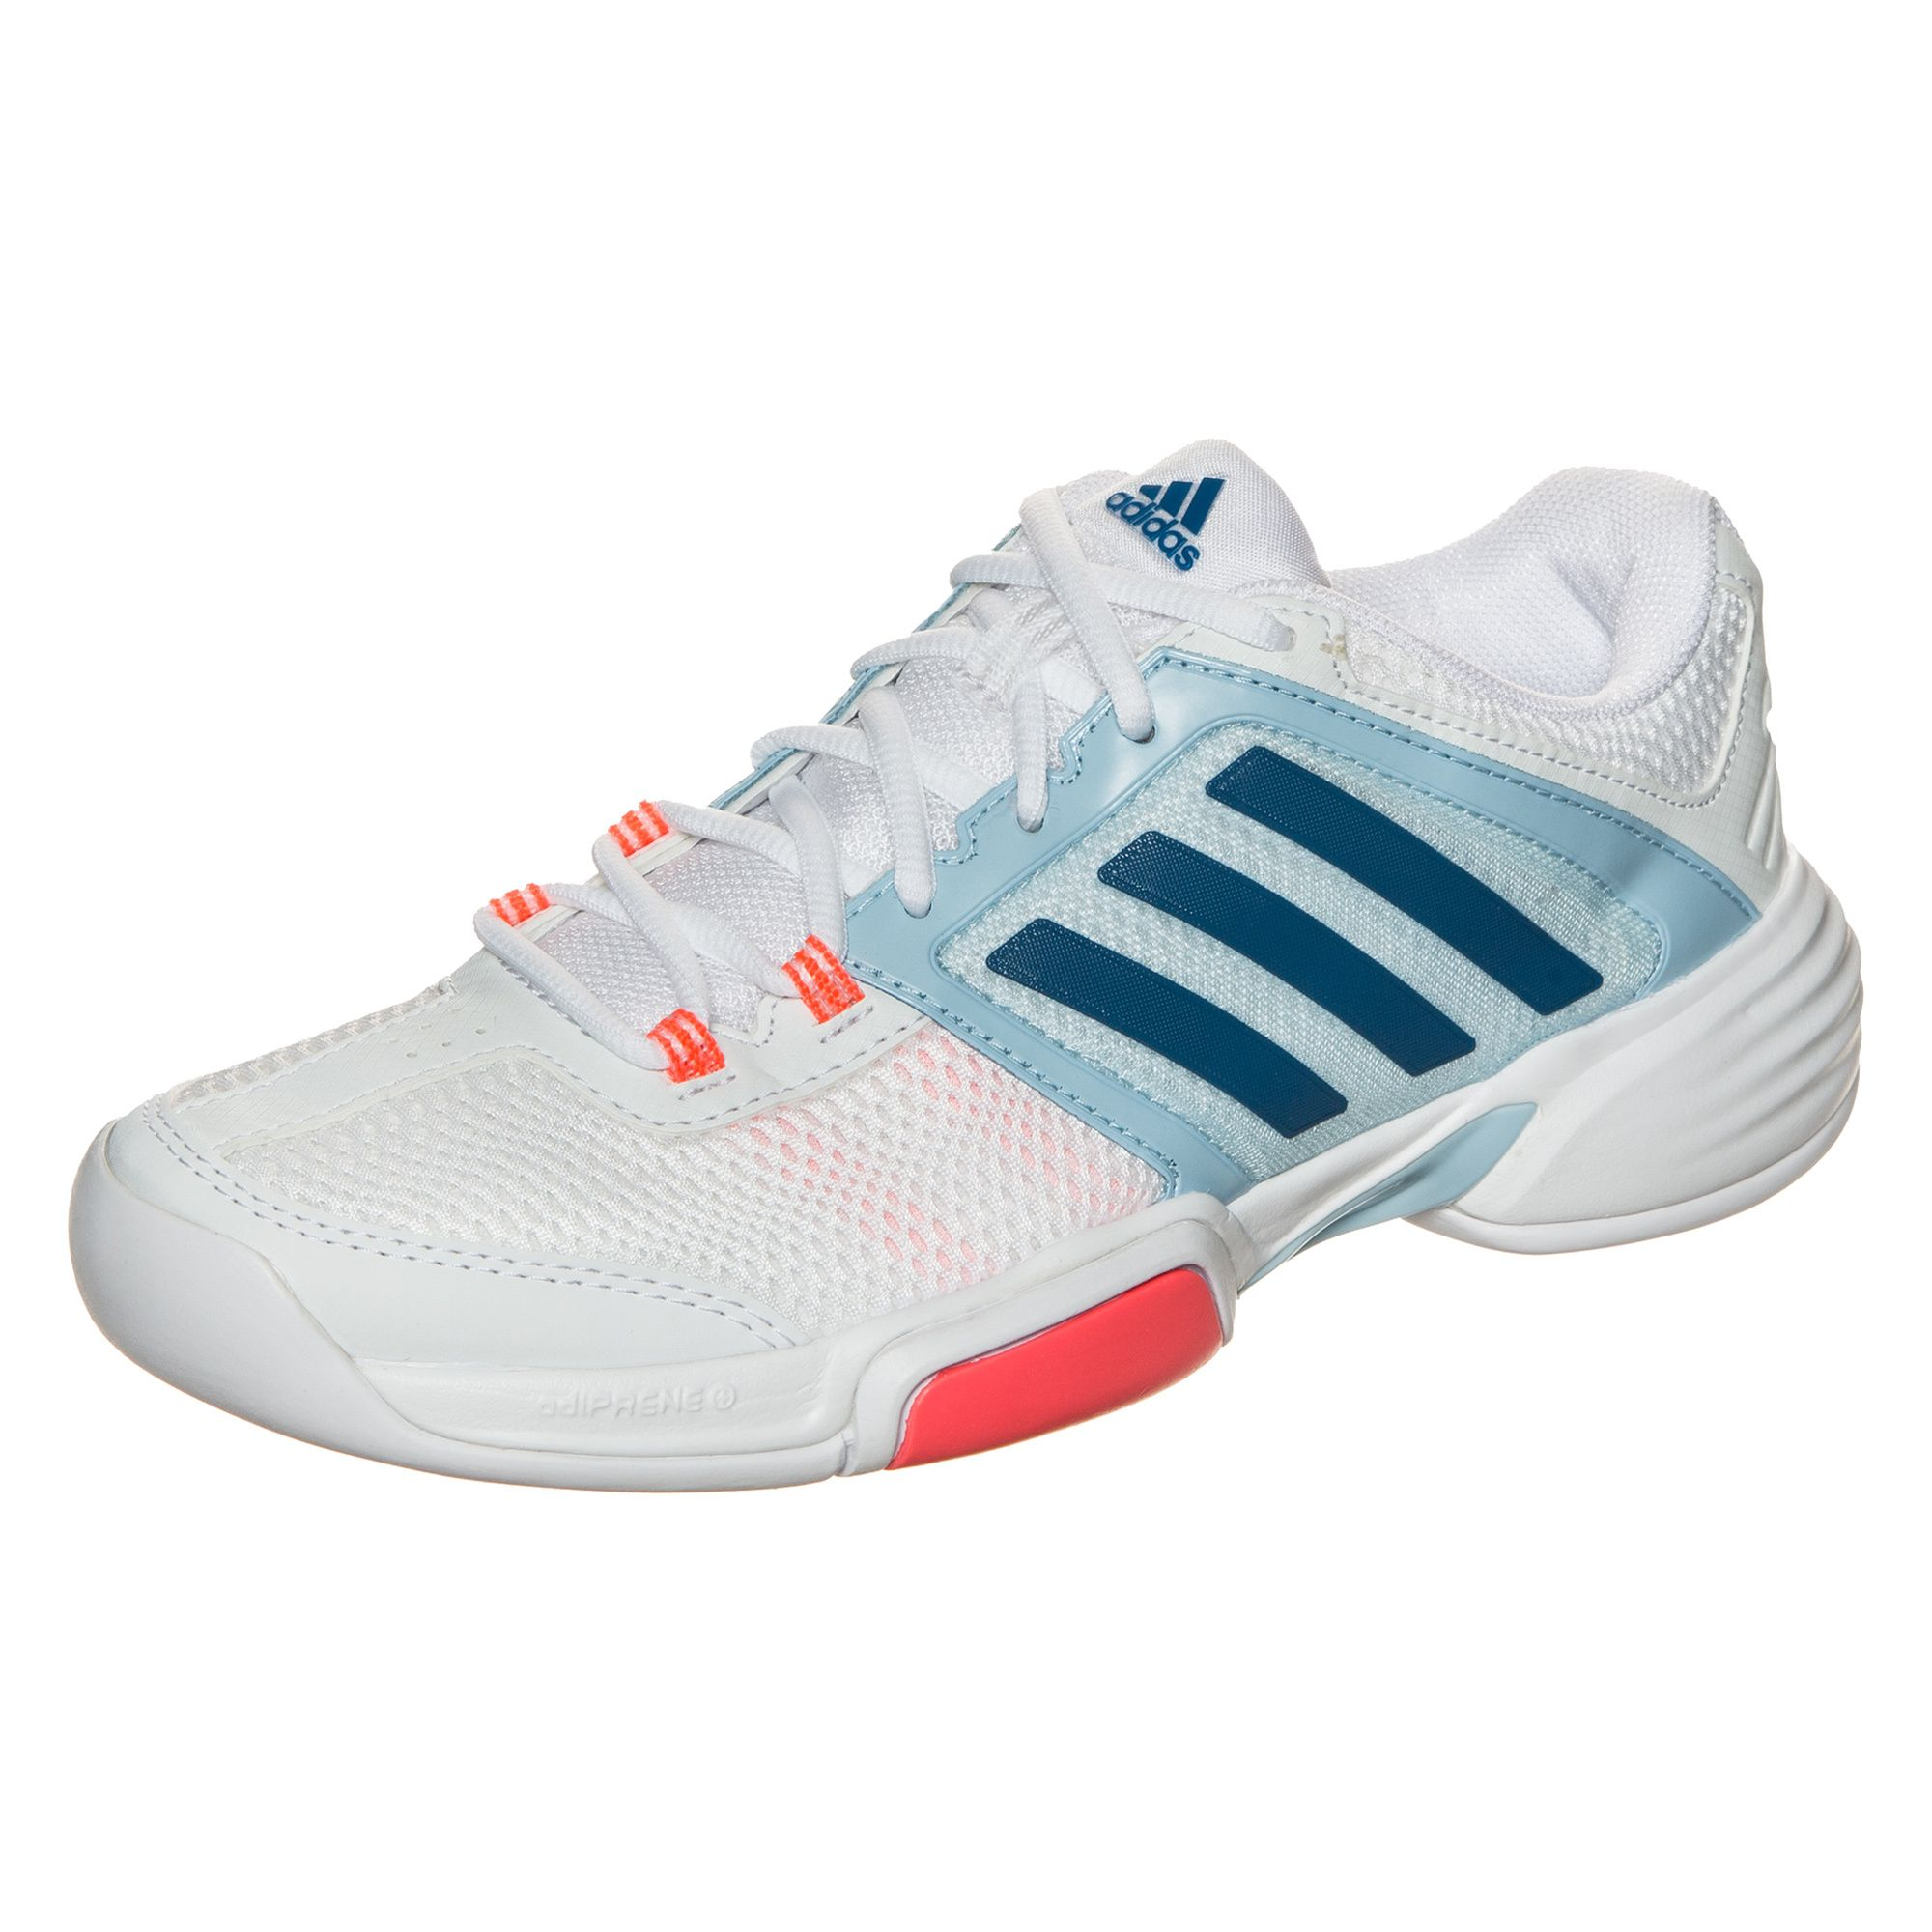 ADIDAS PERFORMANCE adidas Performance Barricade Club Carpet Tennisschuh Damen